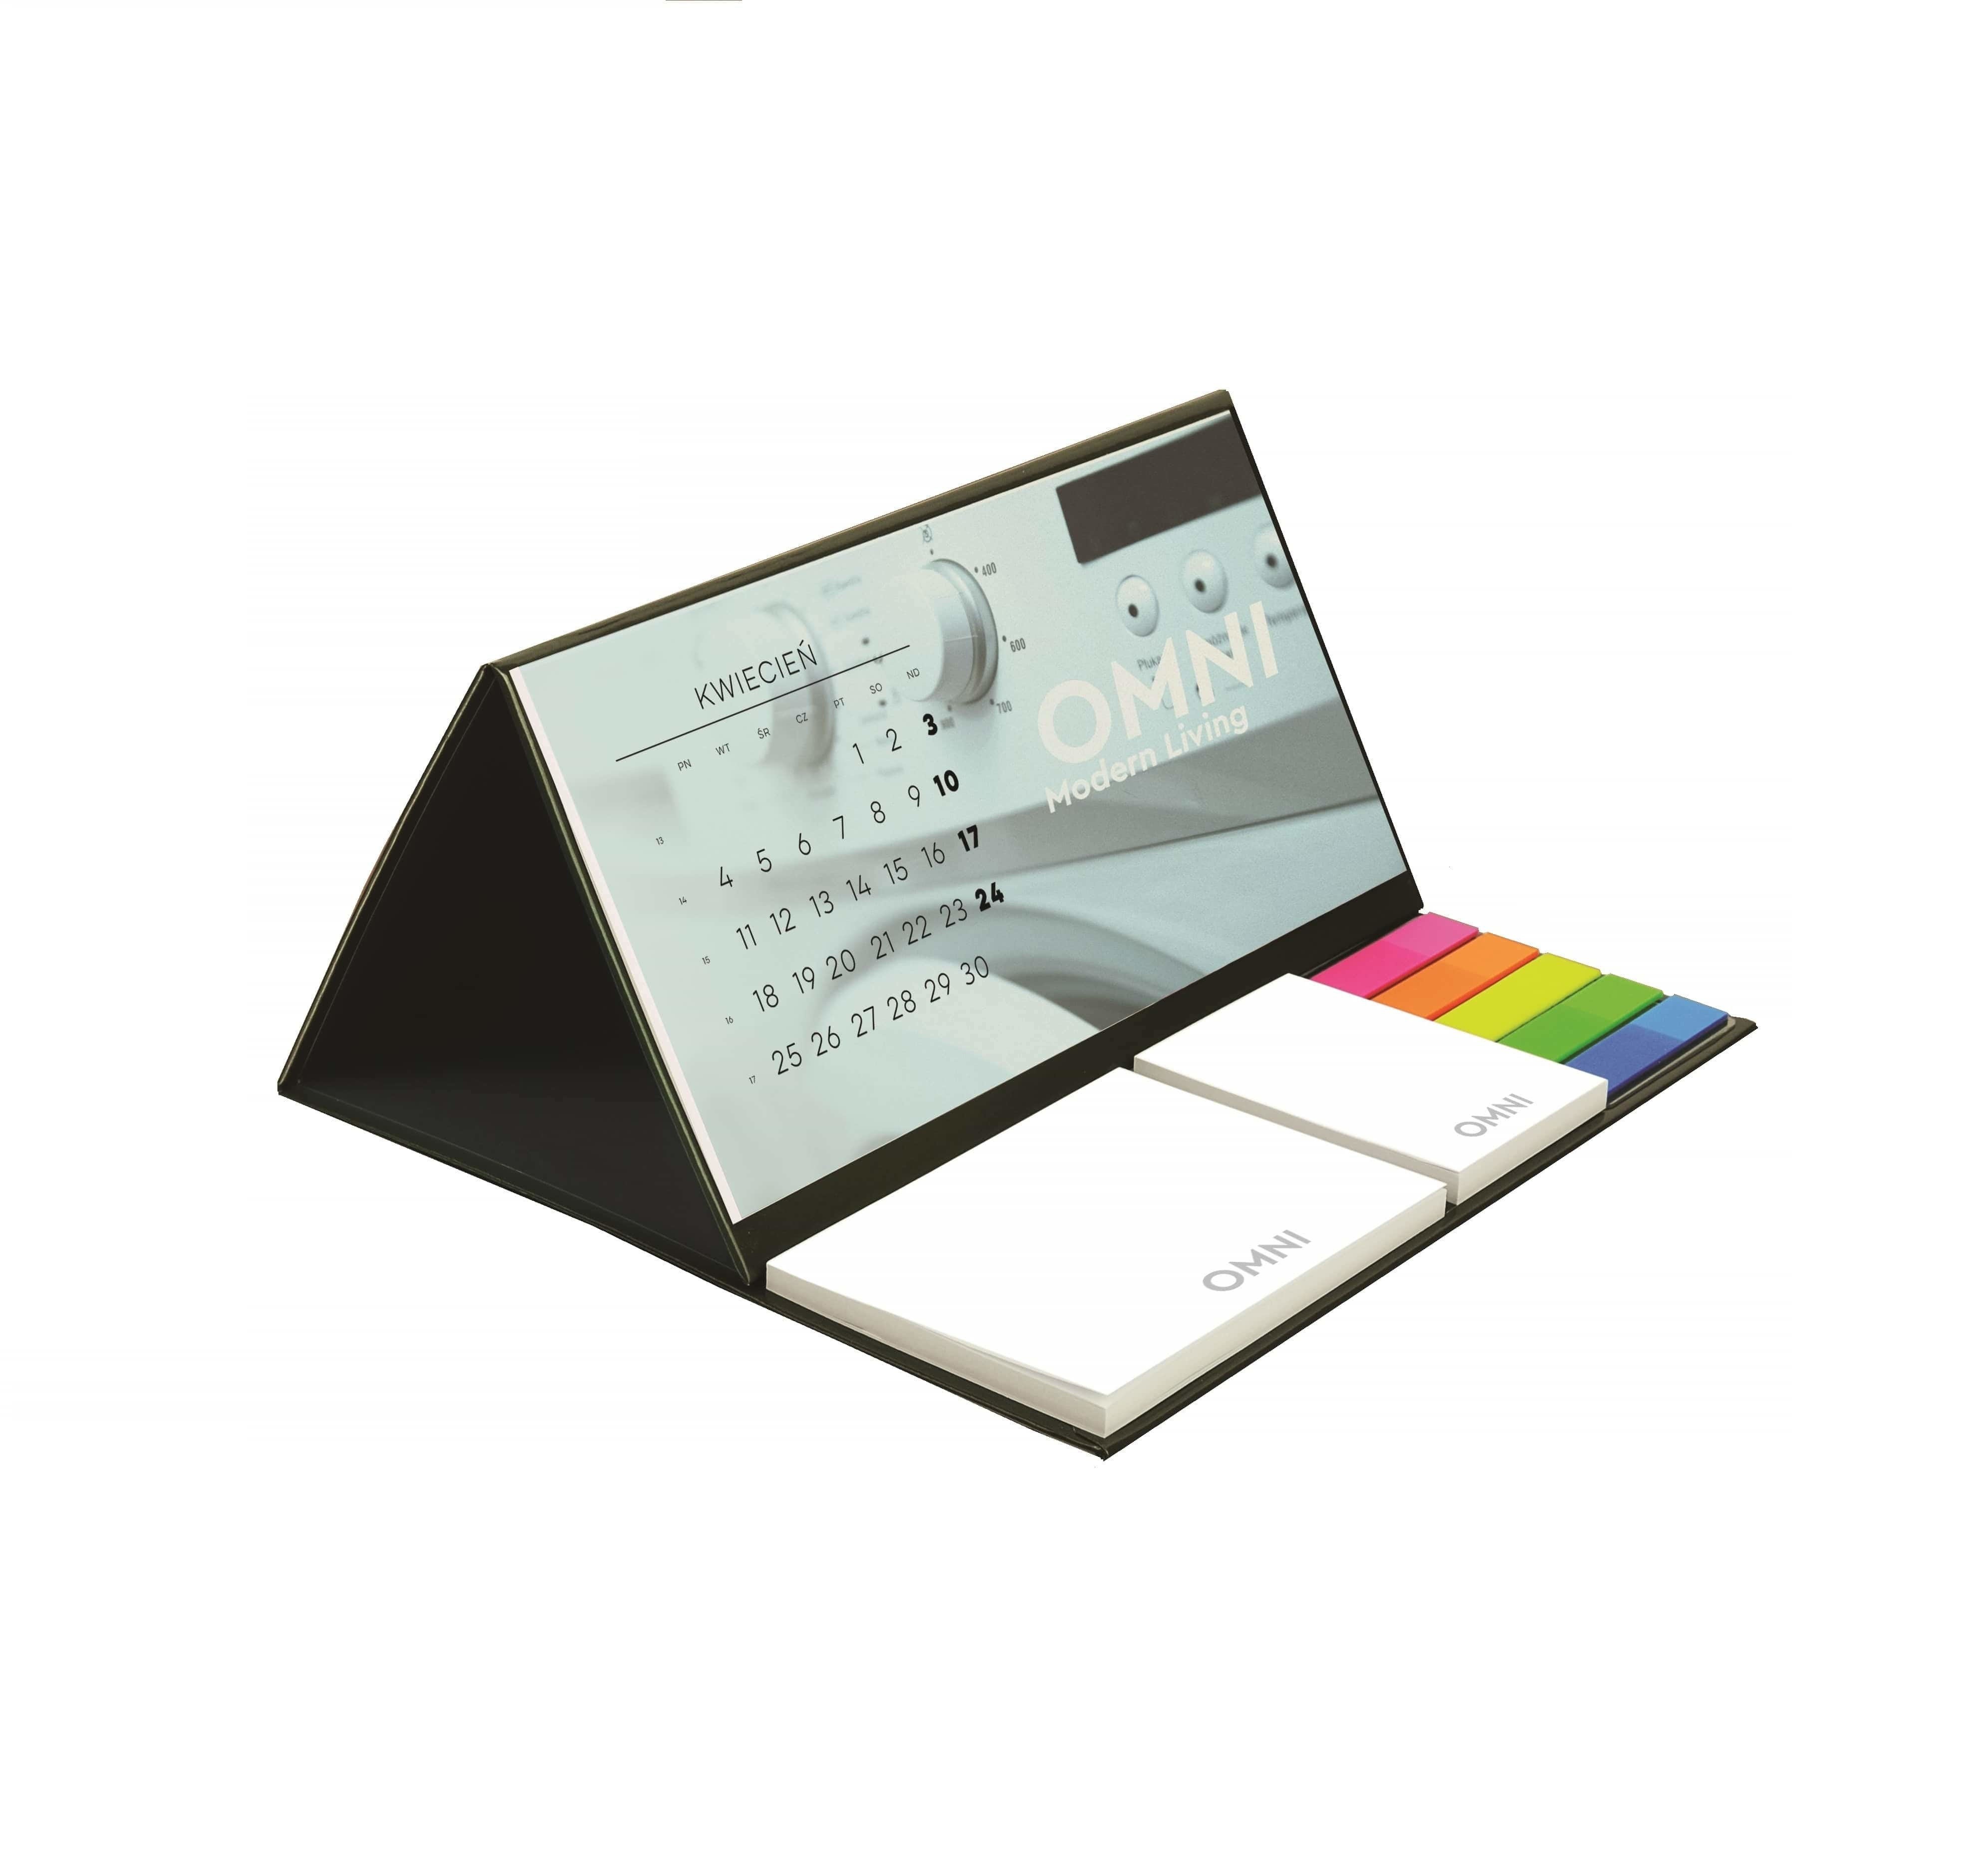 Full colour printed desk calendar 2019 with notepads and index markers, www.ontimeprint.co.uk